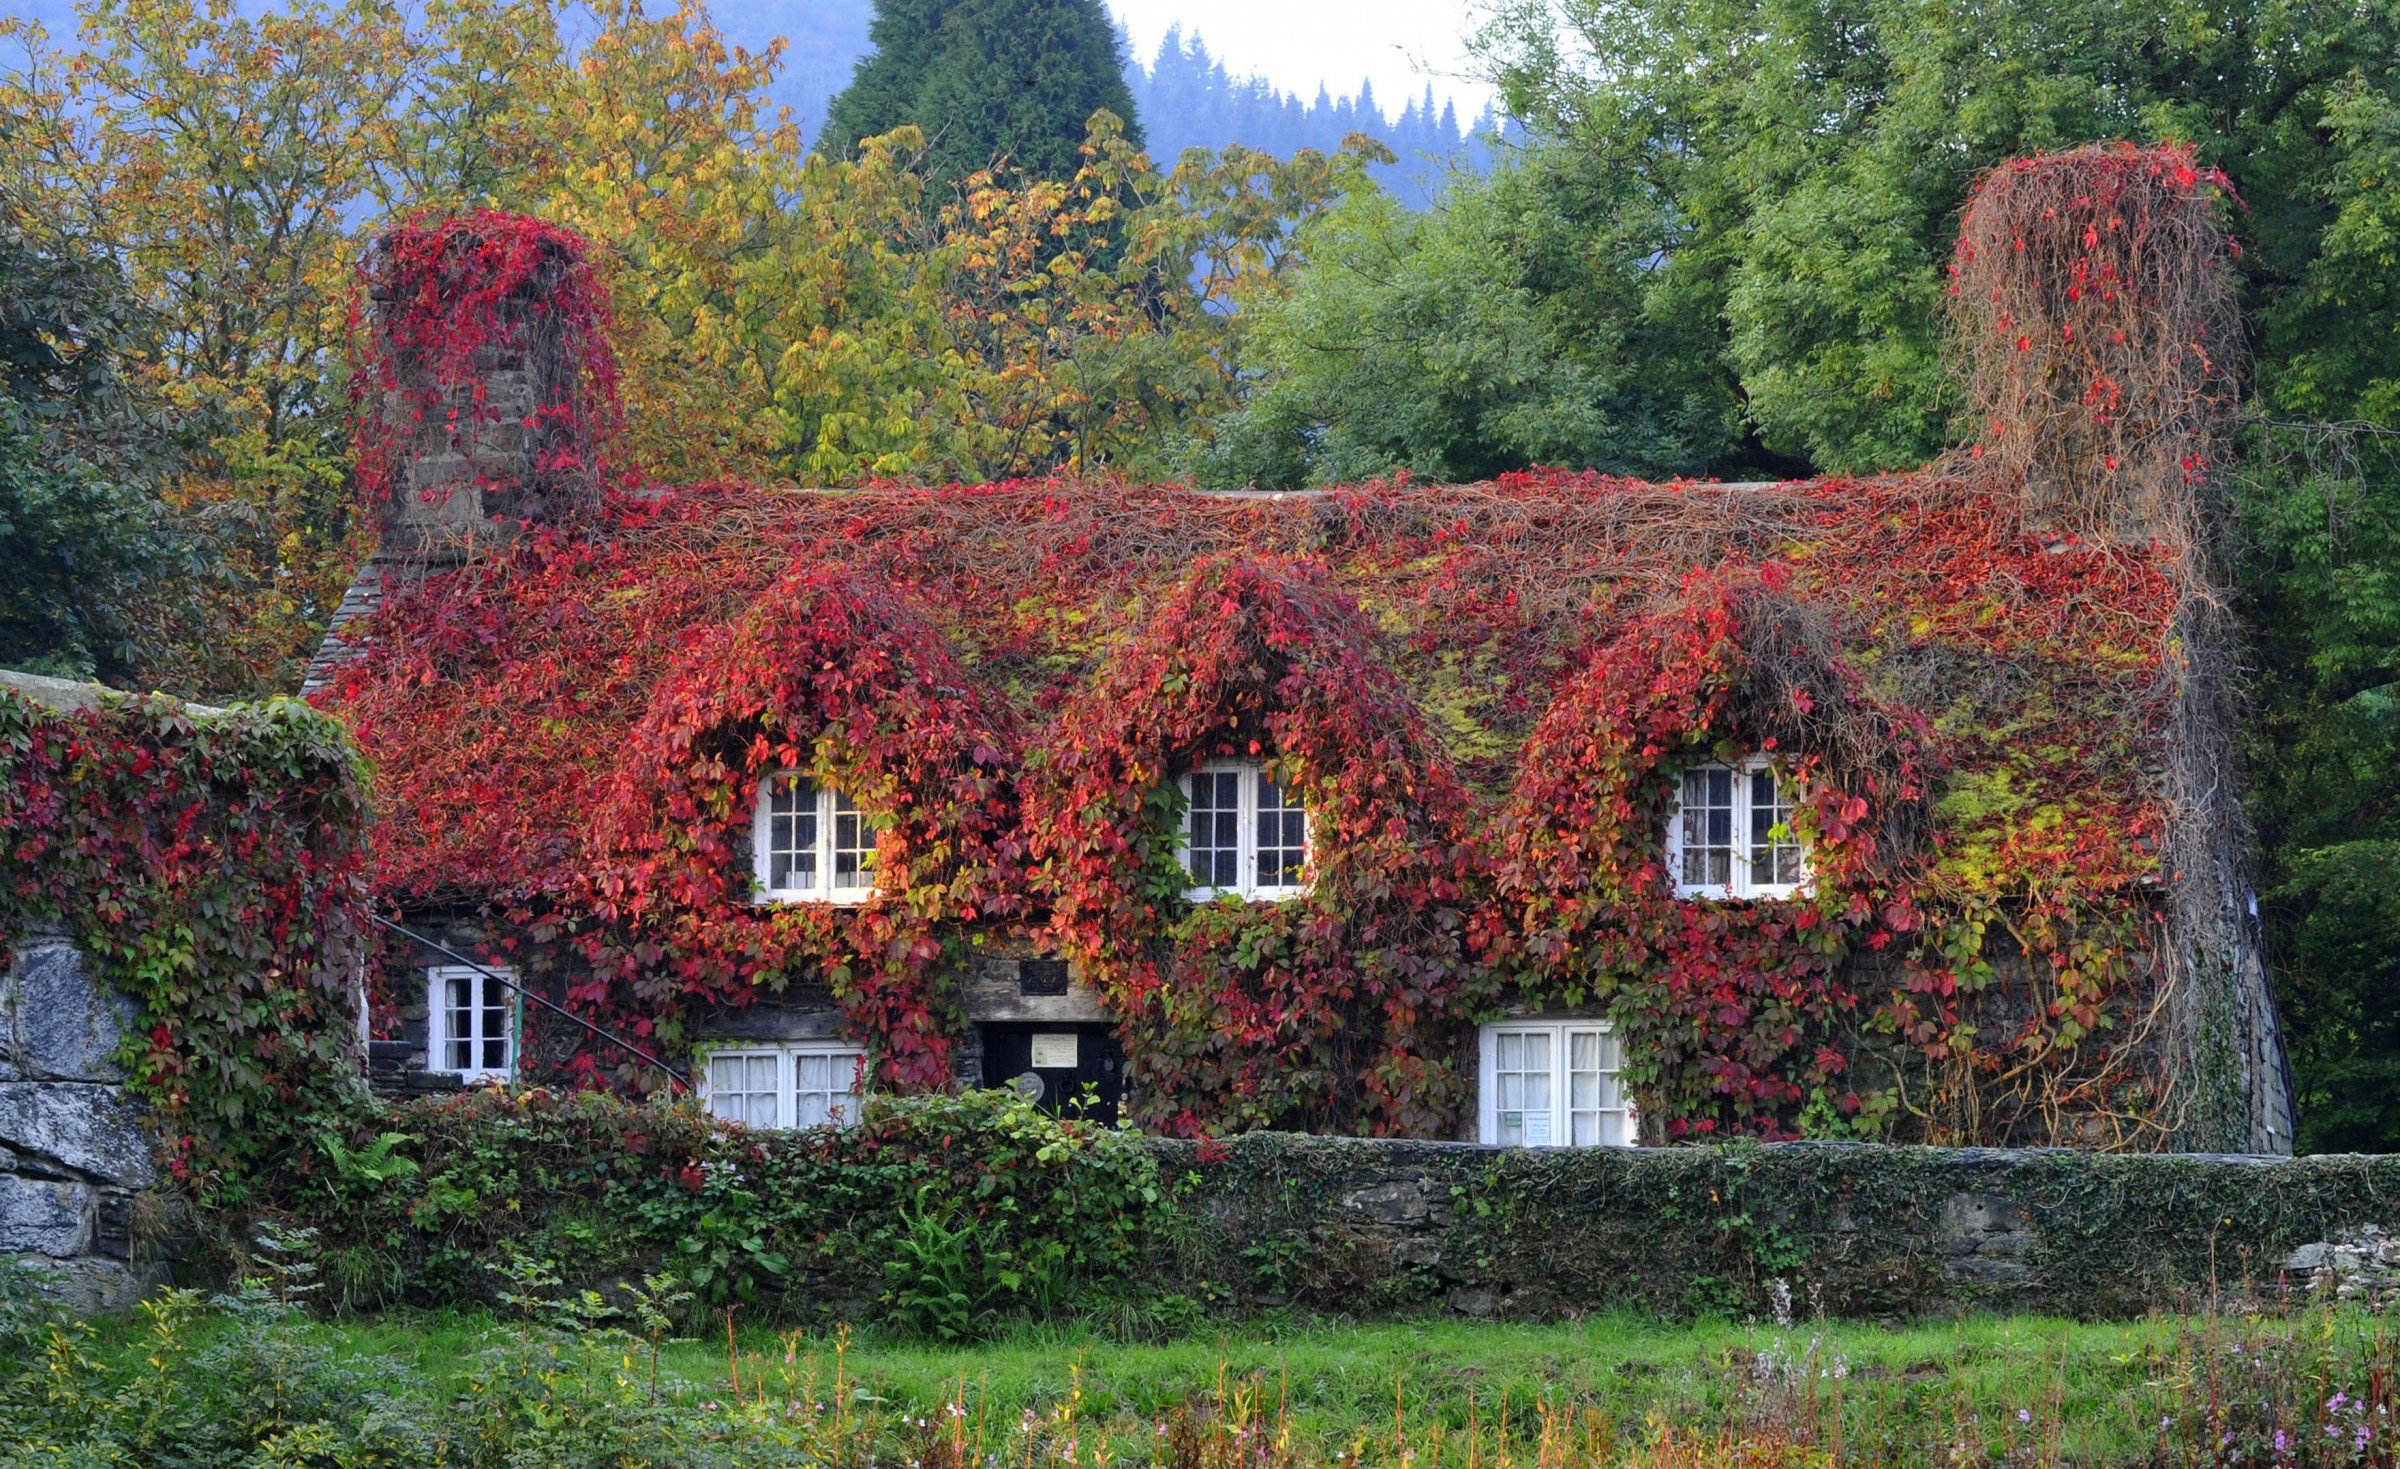 Virginia creeper covering a 15th-century cottage house, UK.